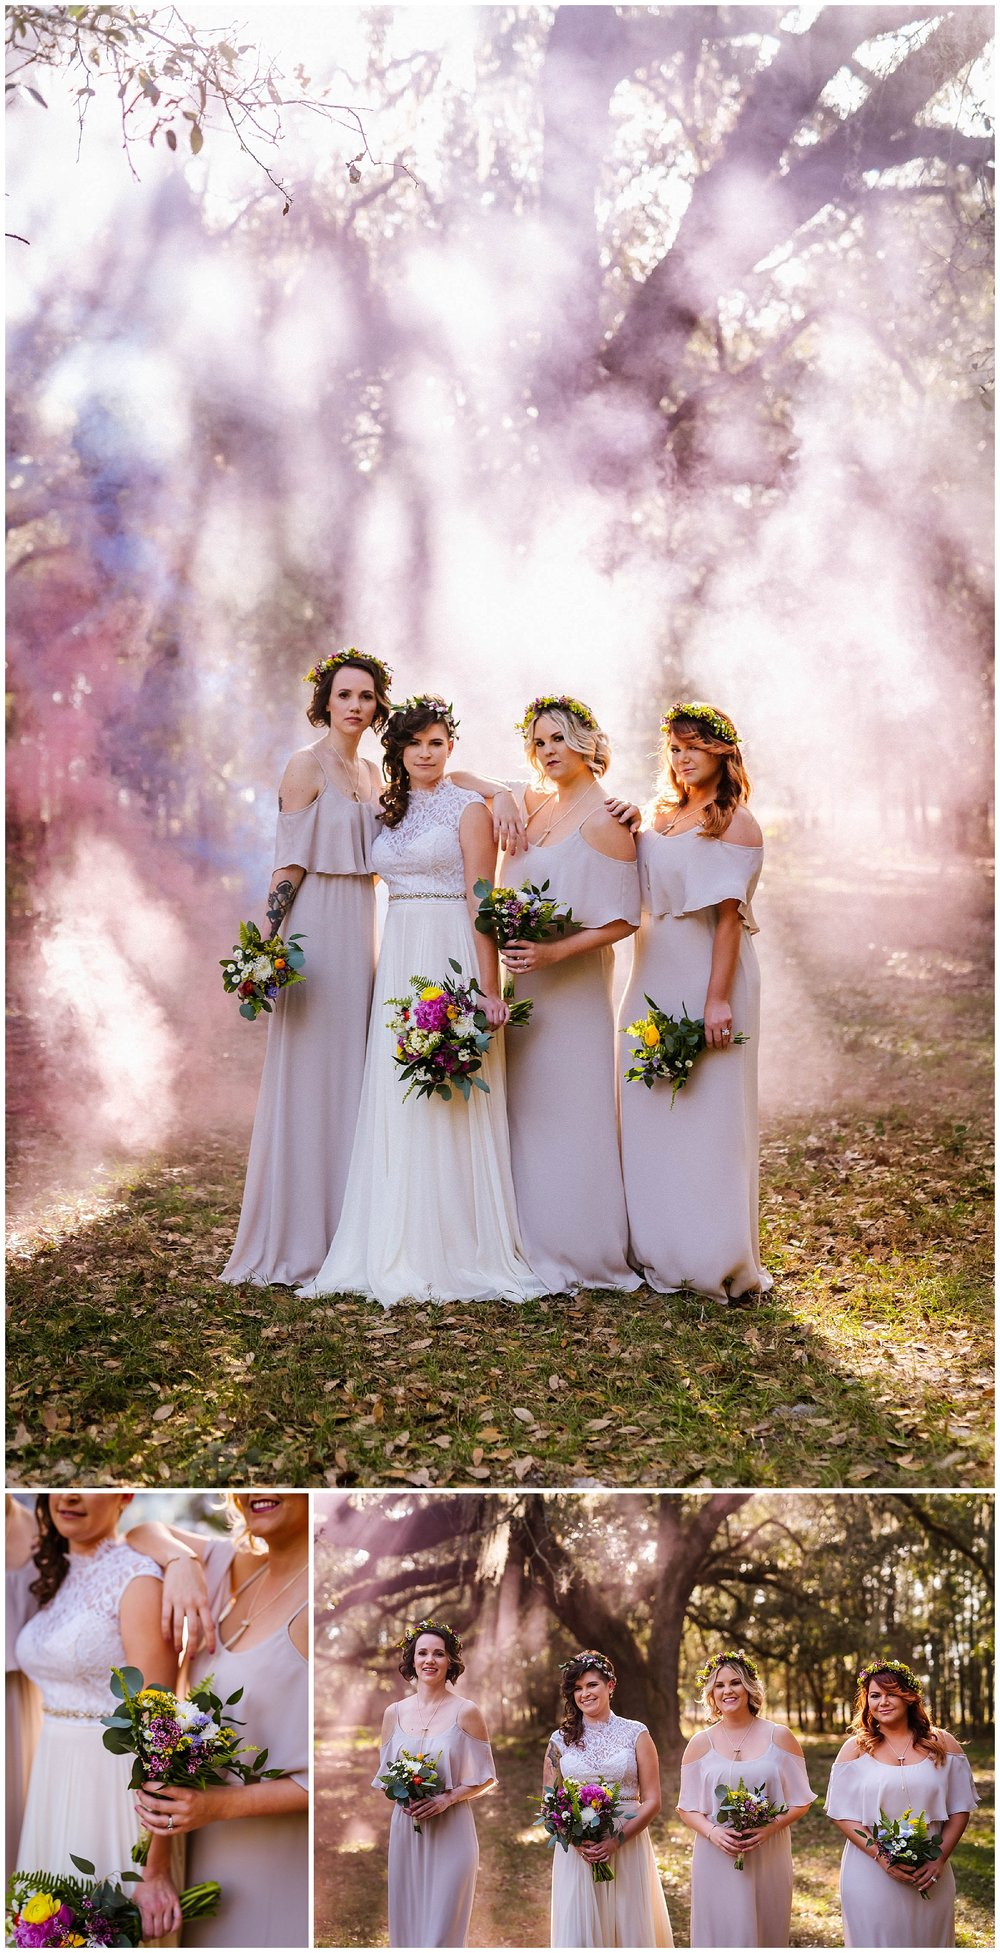 magical-outdoor-florida-wedding-smoke-bombs-flowers-crown-beard_0023.jpg